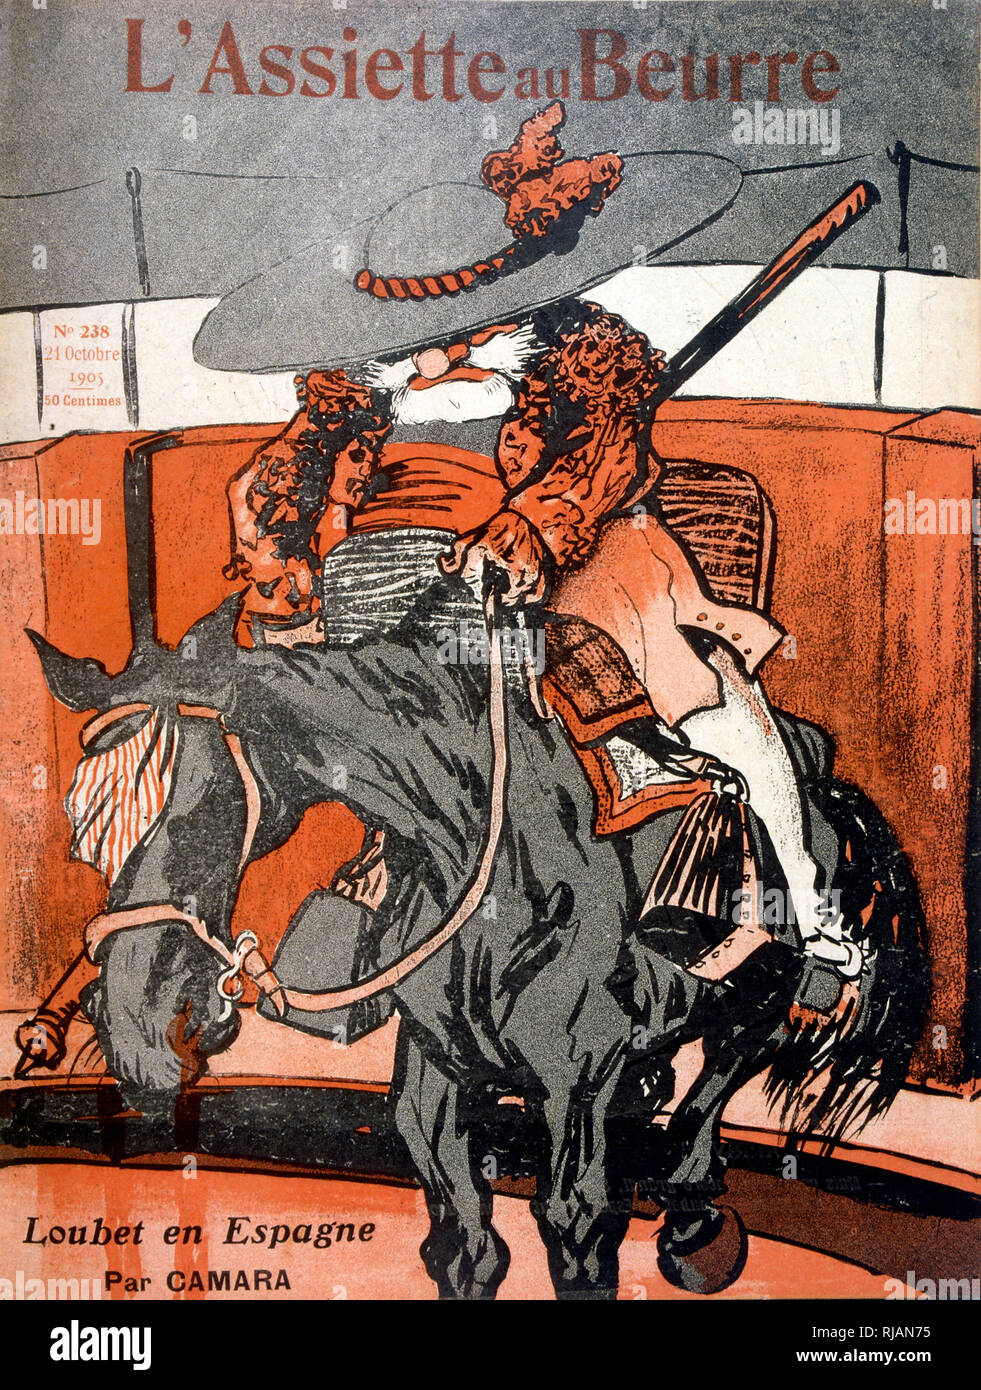 French illustration of an old Spaniard on a horse 1905 - Stock Image